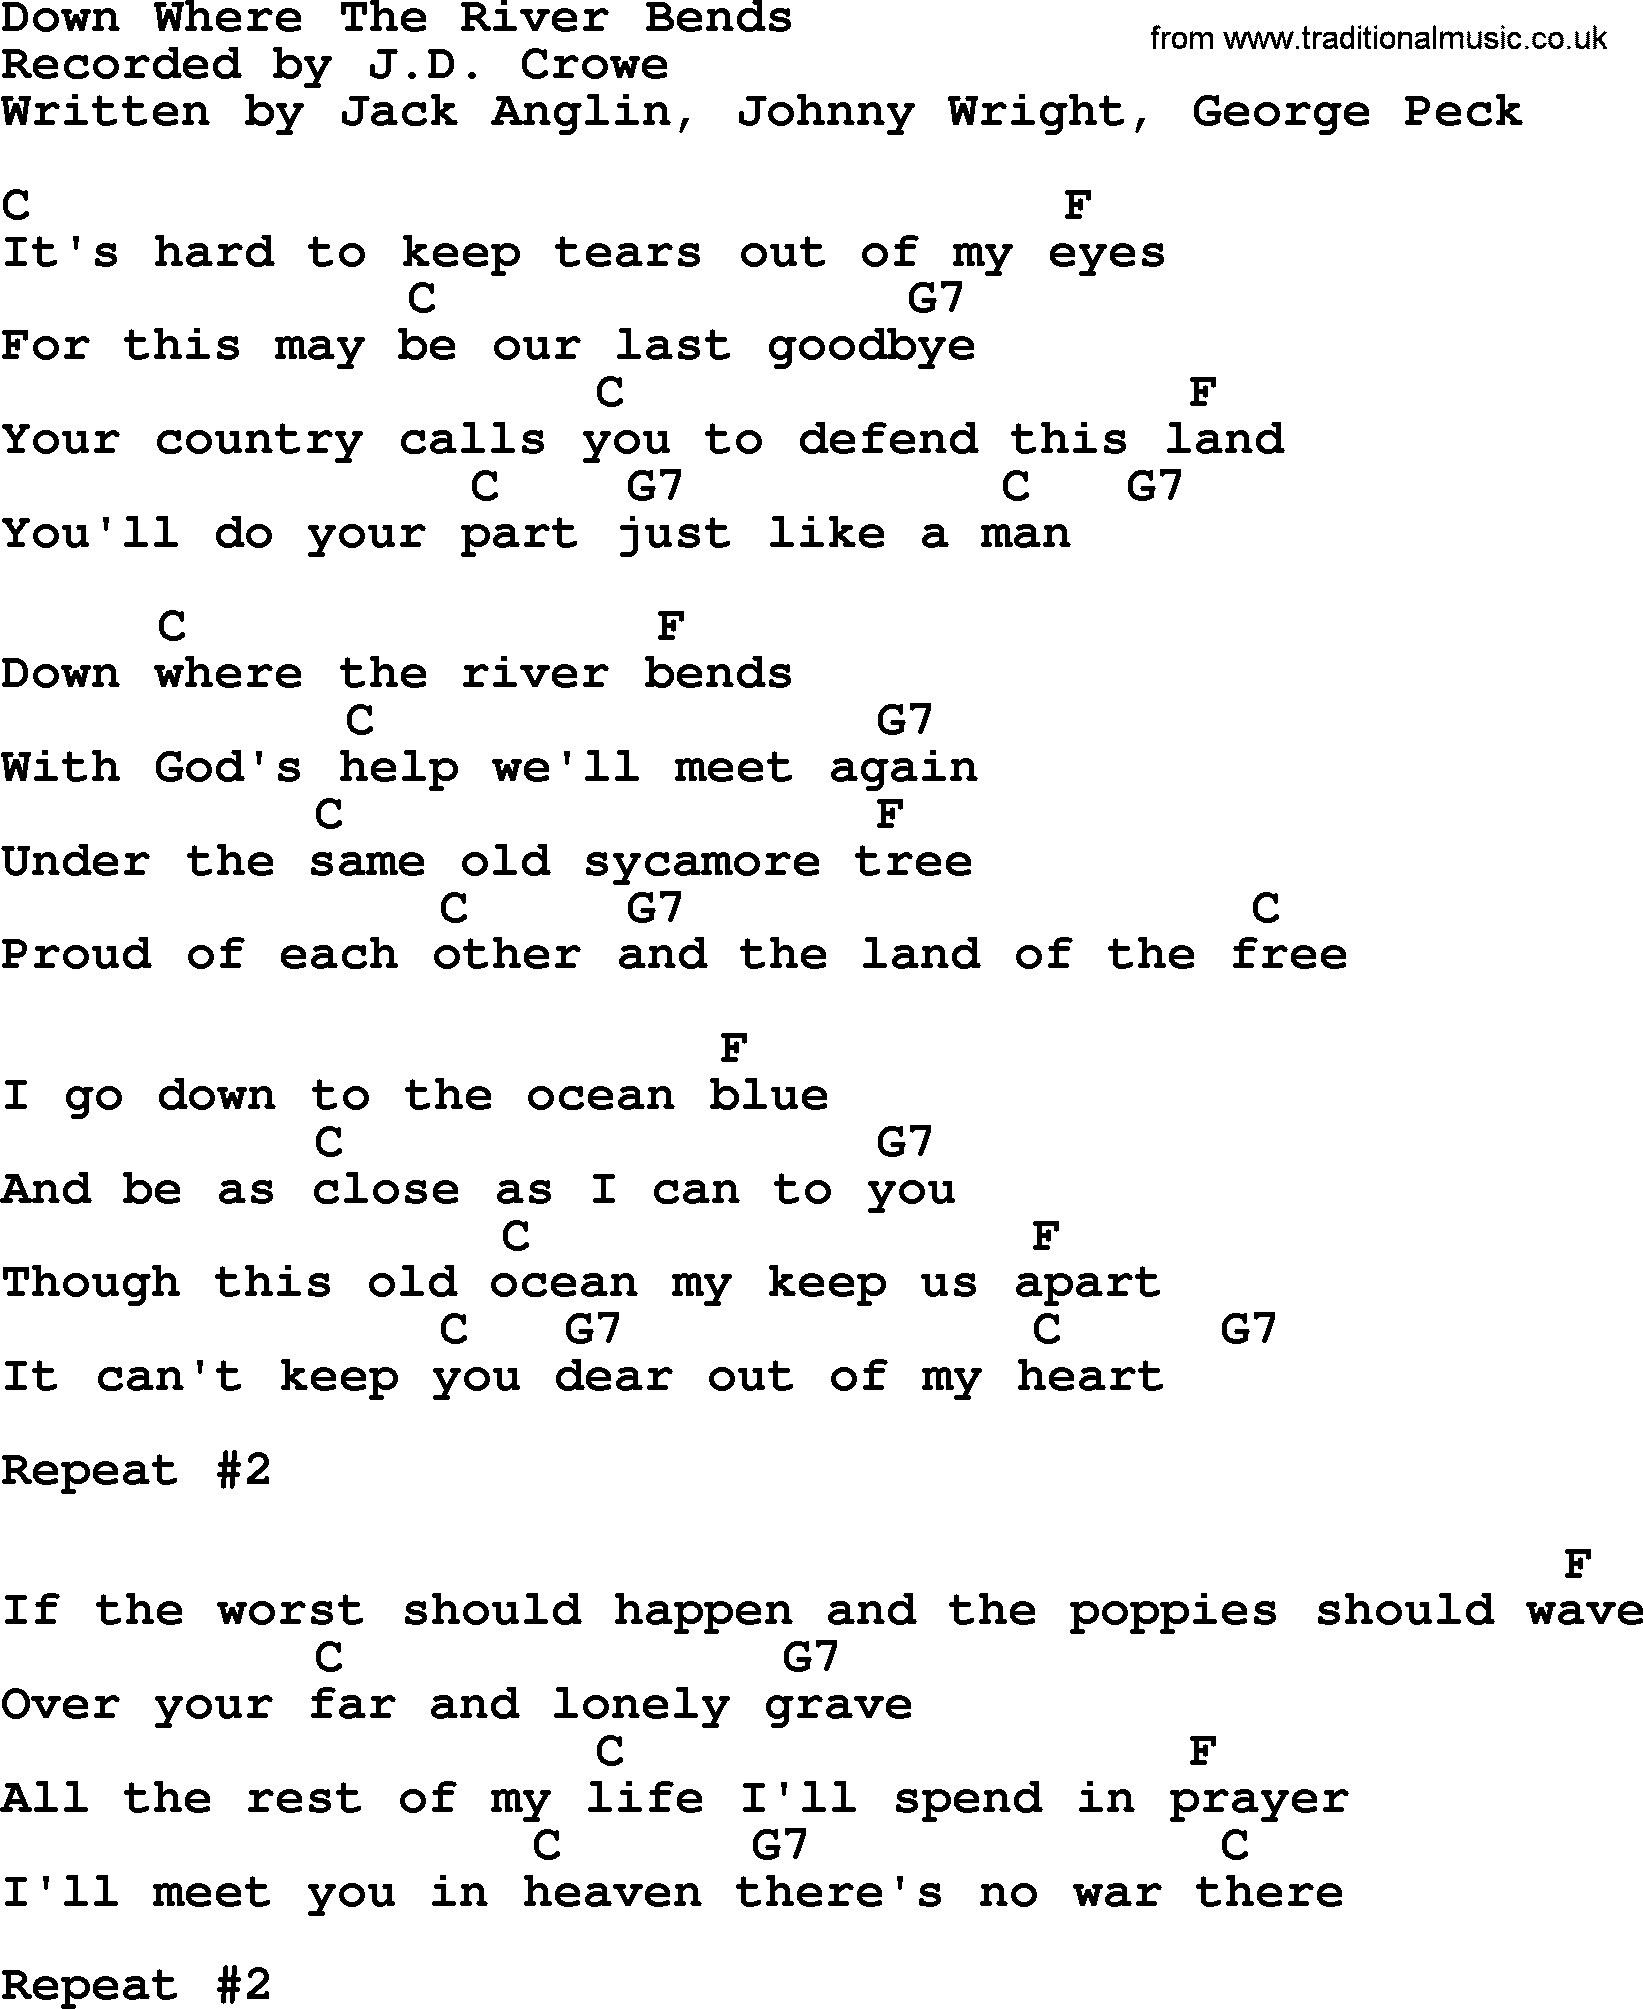 Down where the river bends bluegrass lyrics with chords bluegrass song down where the river bends lyrics and chords hexwebz Image collections